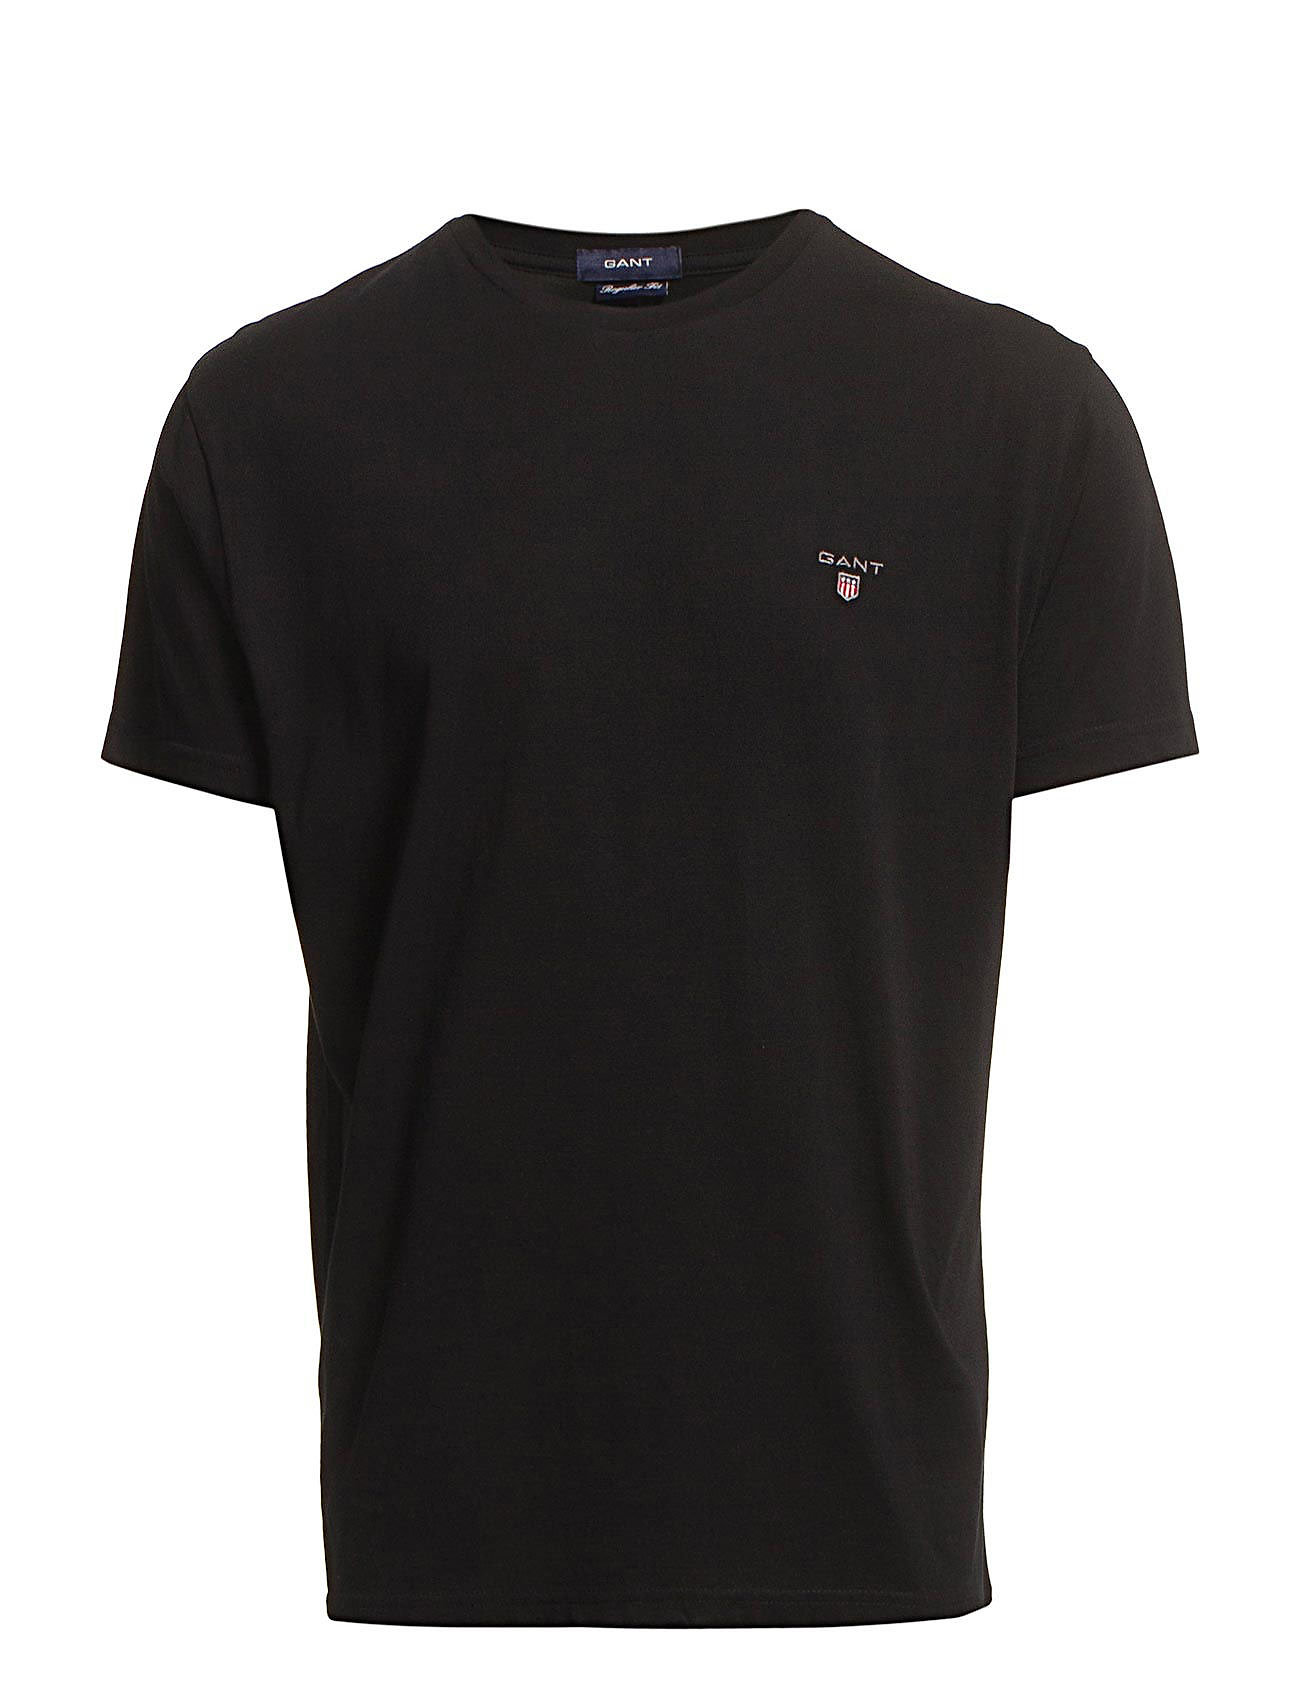 Gant ORIGINAL SS T-SHIRT - BLACK